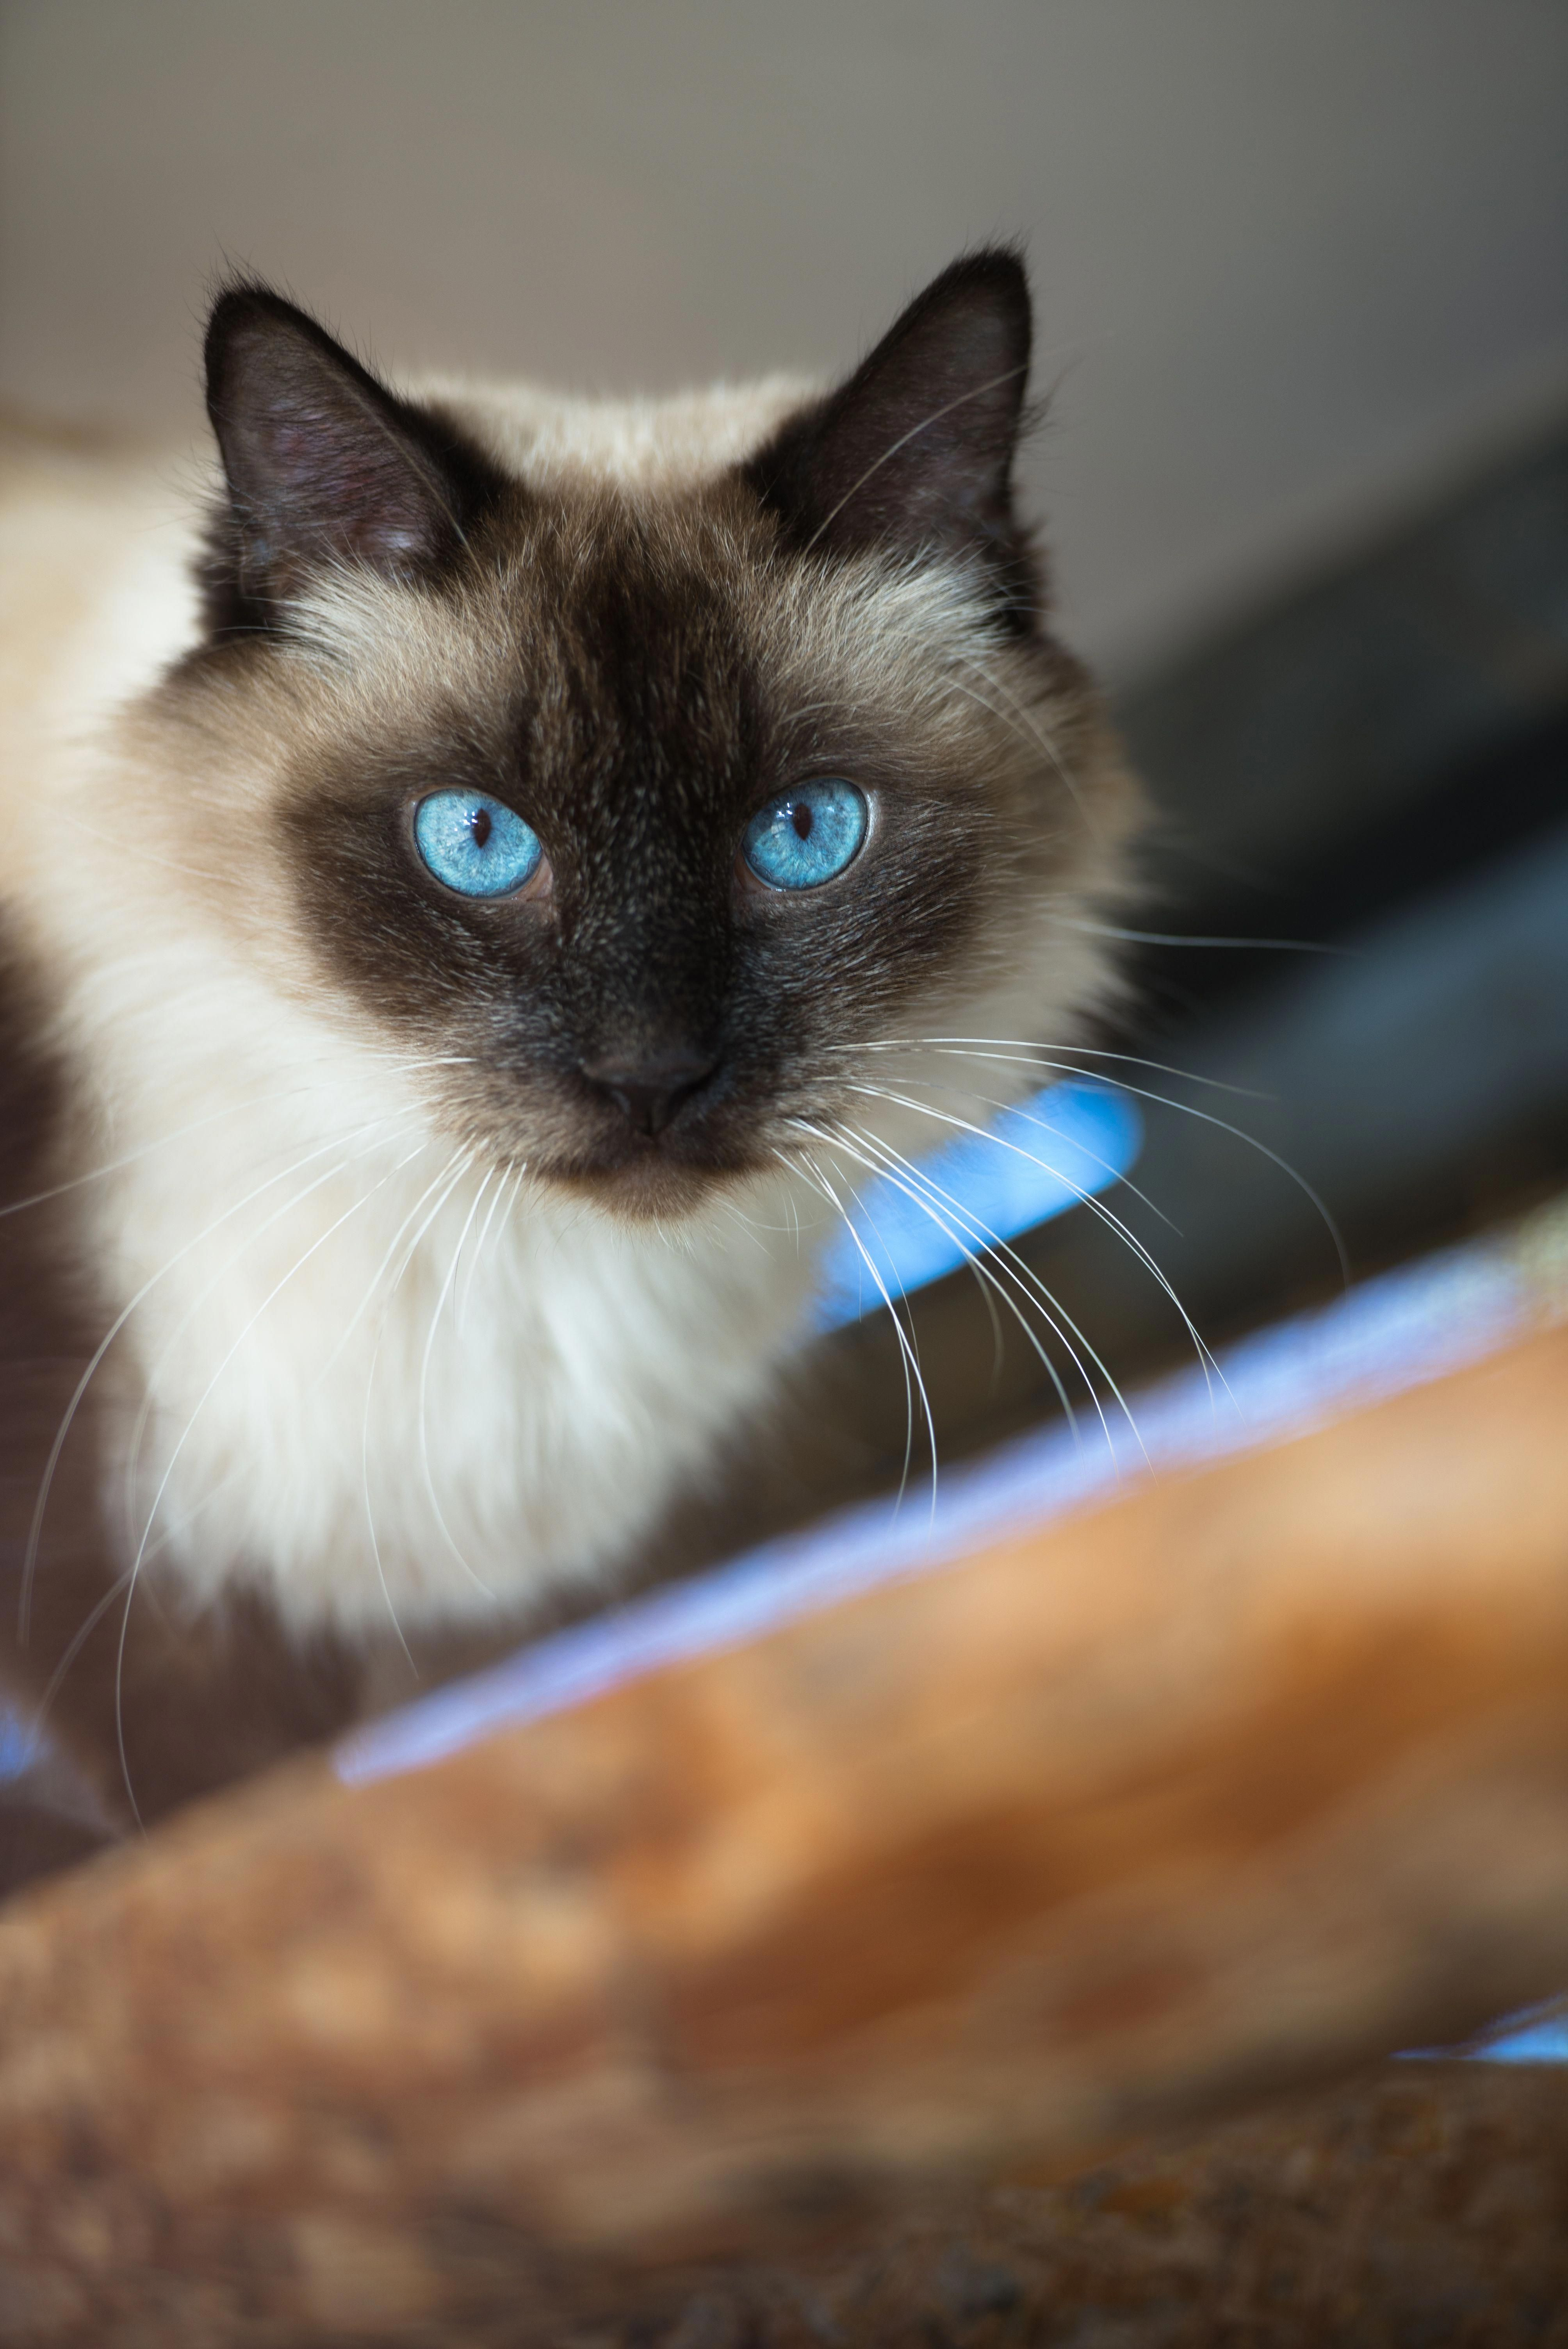 Cats With Down Syndrome Cat photography, Down syndrome